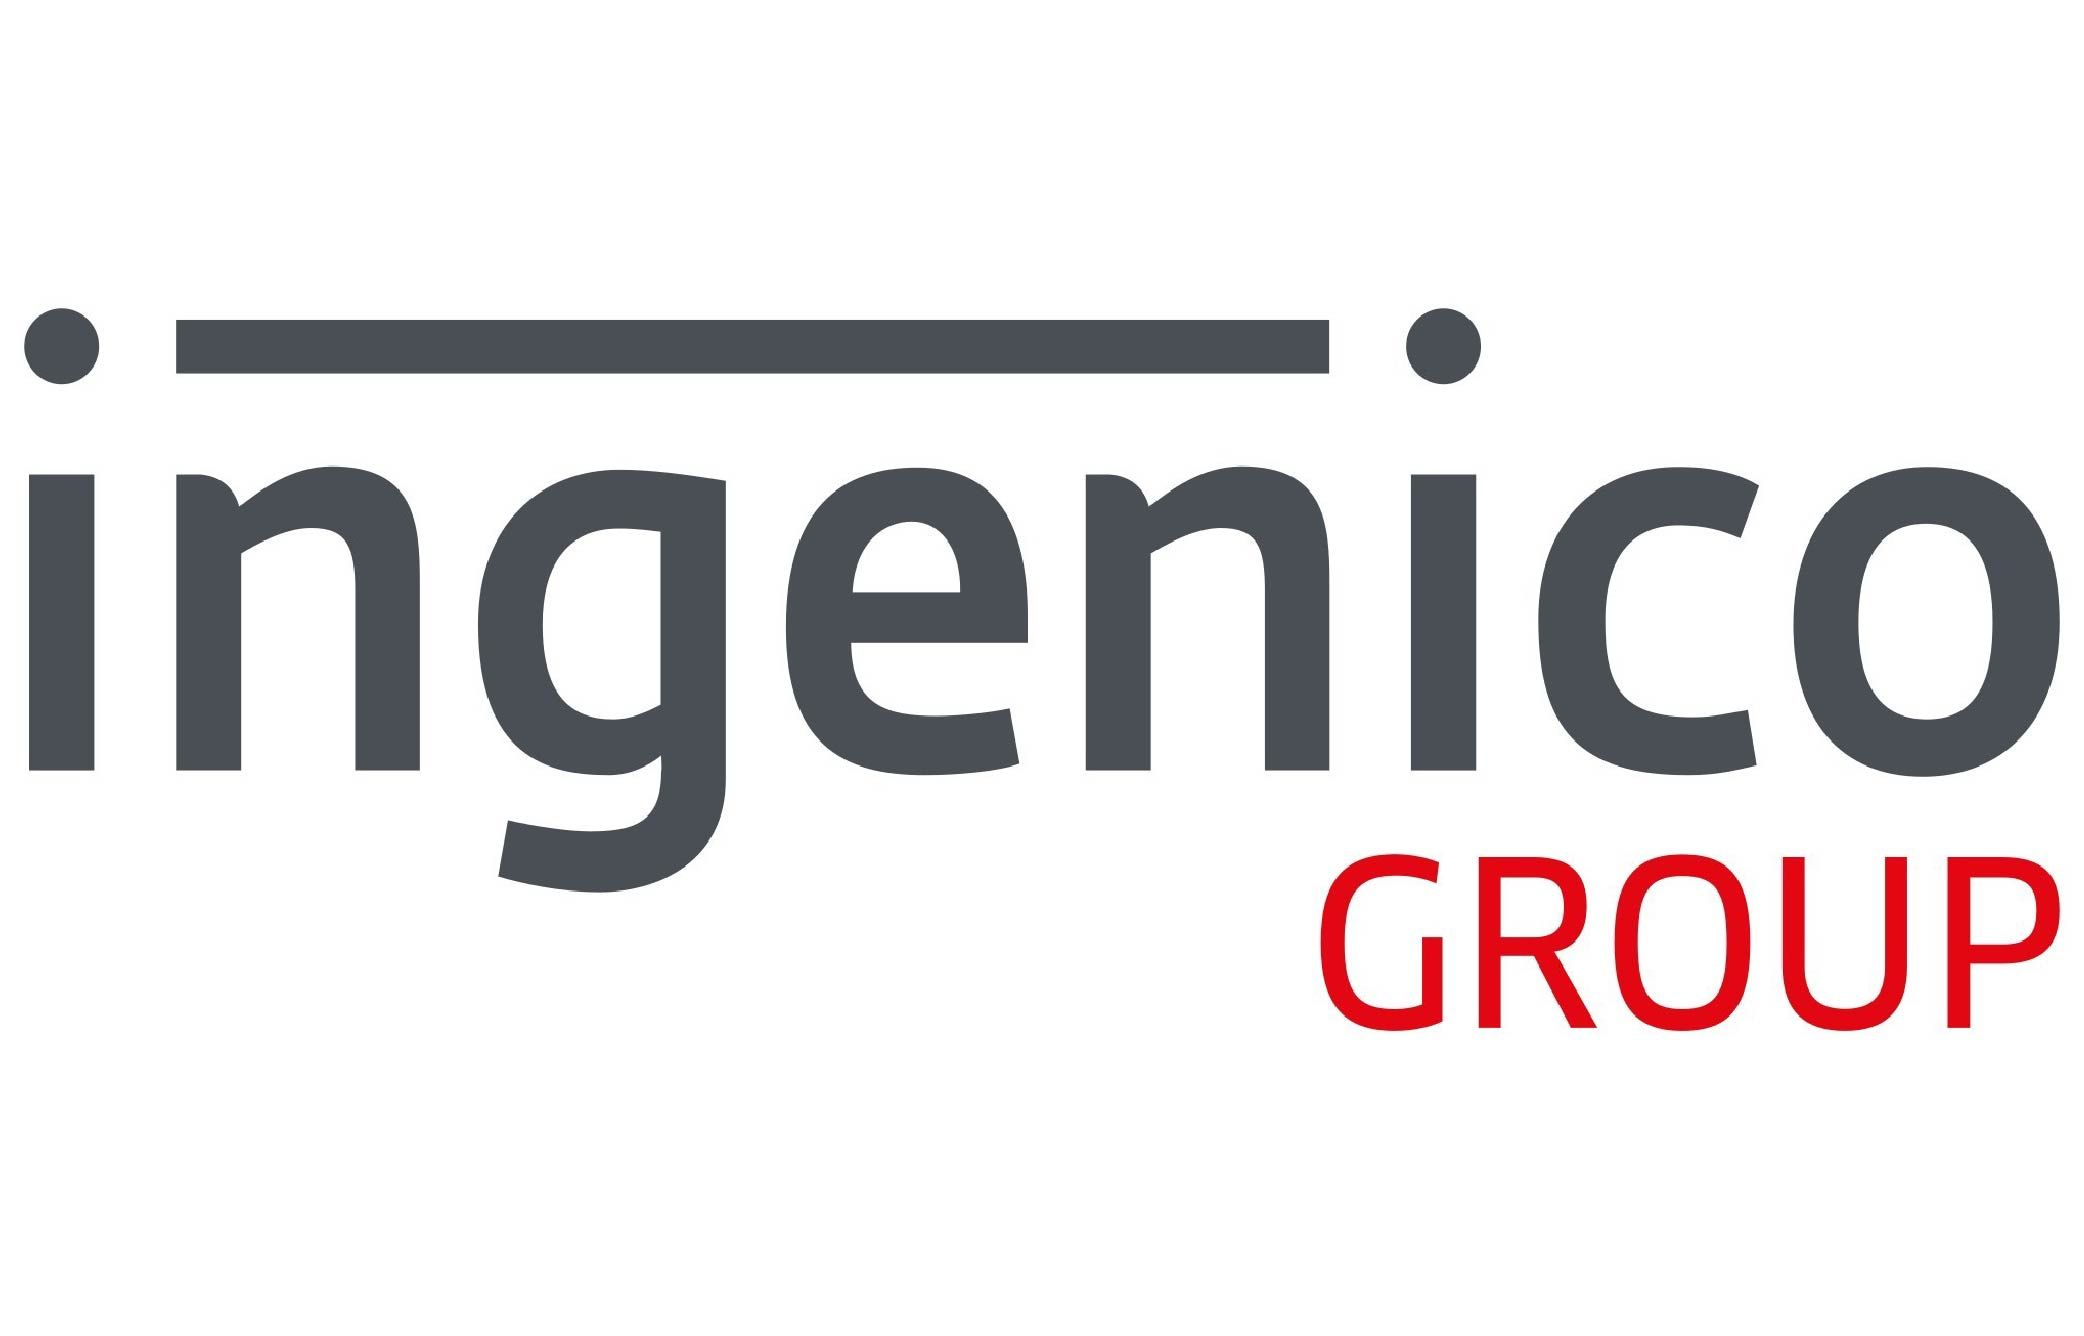 PointofSale Ingenico answers consumers' call for more payment options through new LinkPlus solution